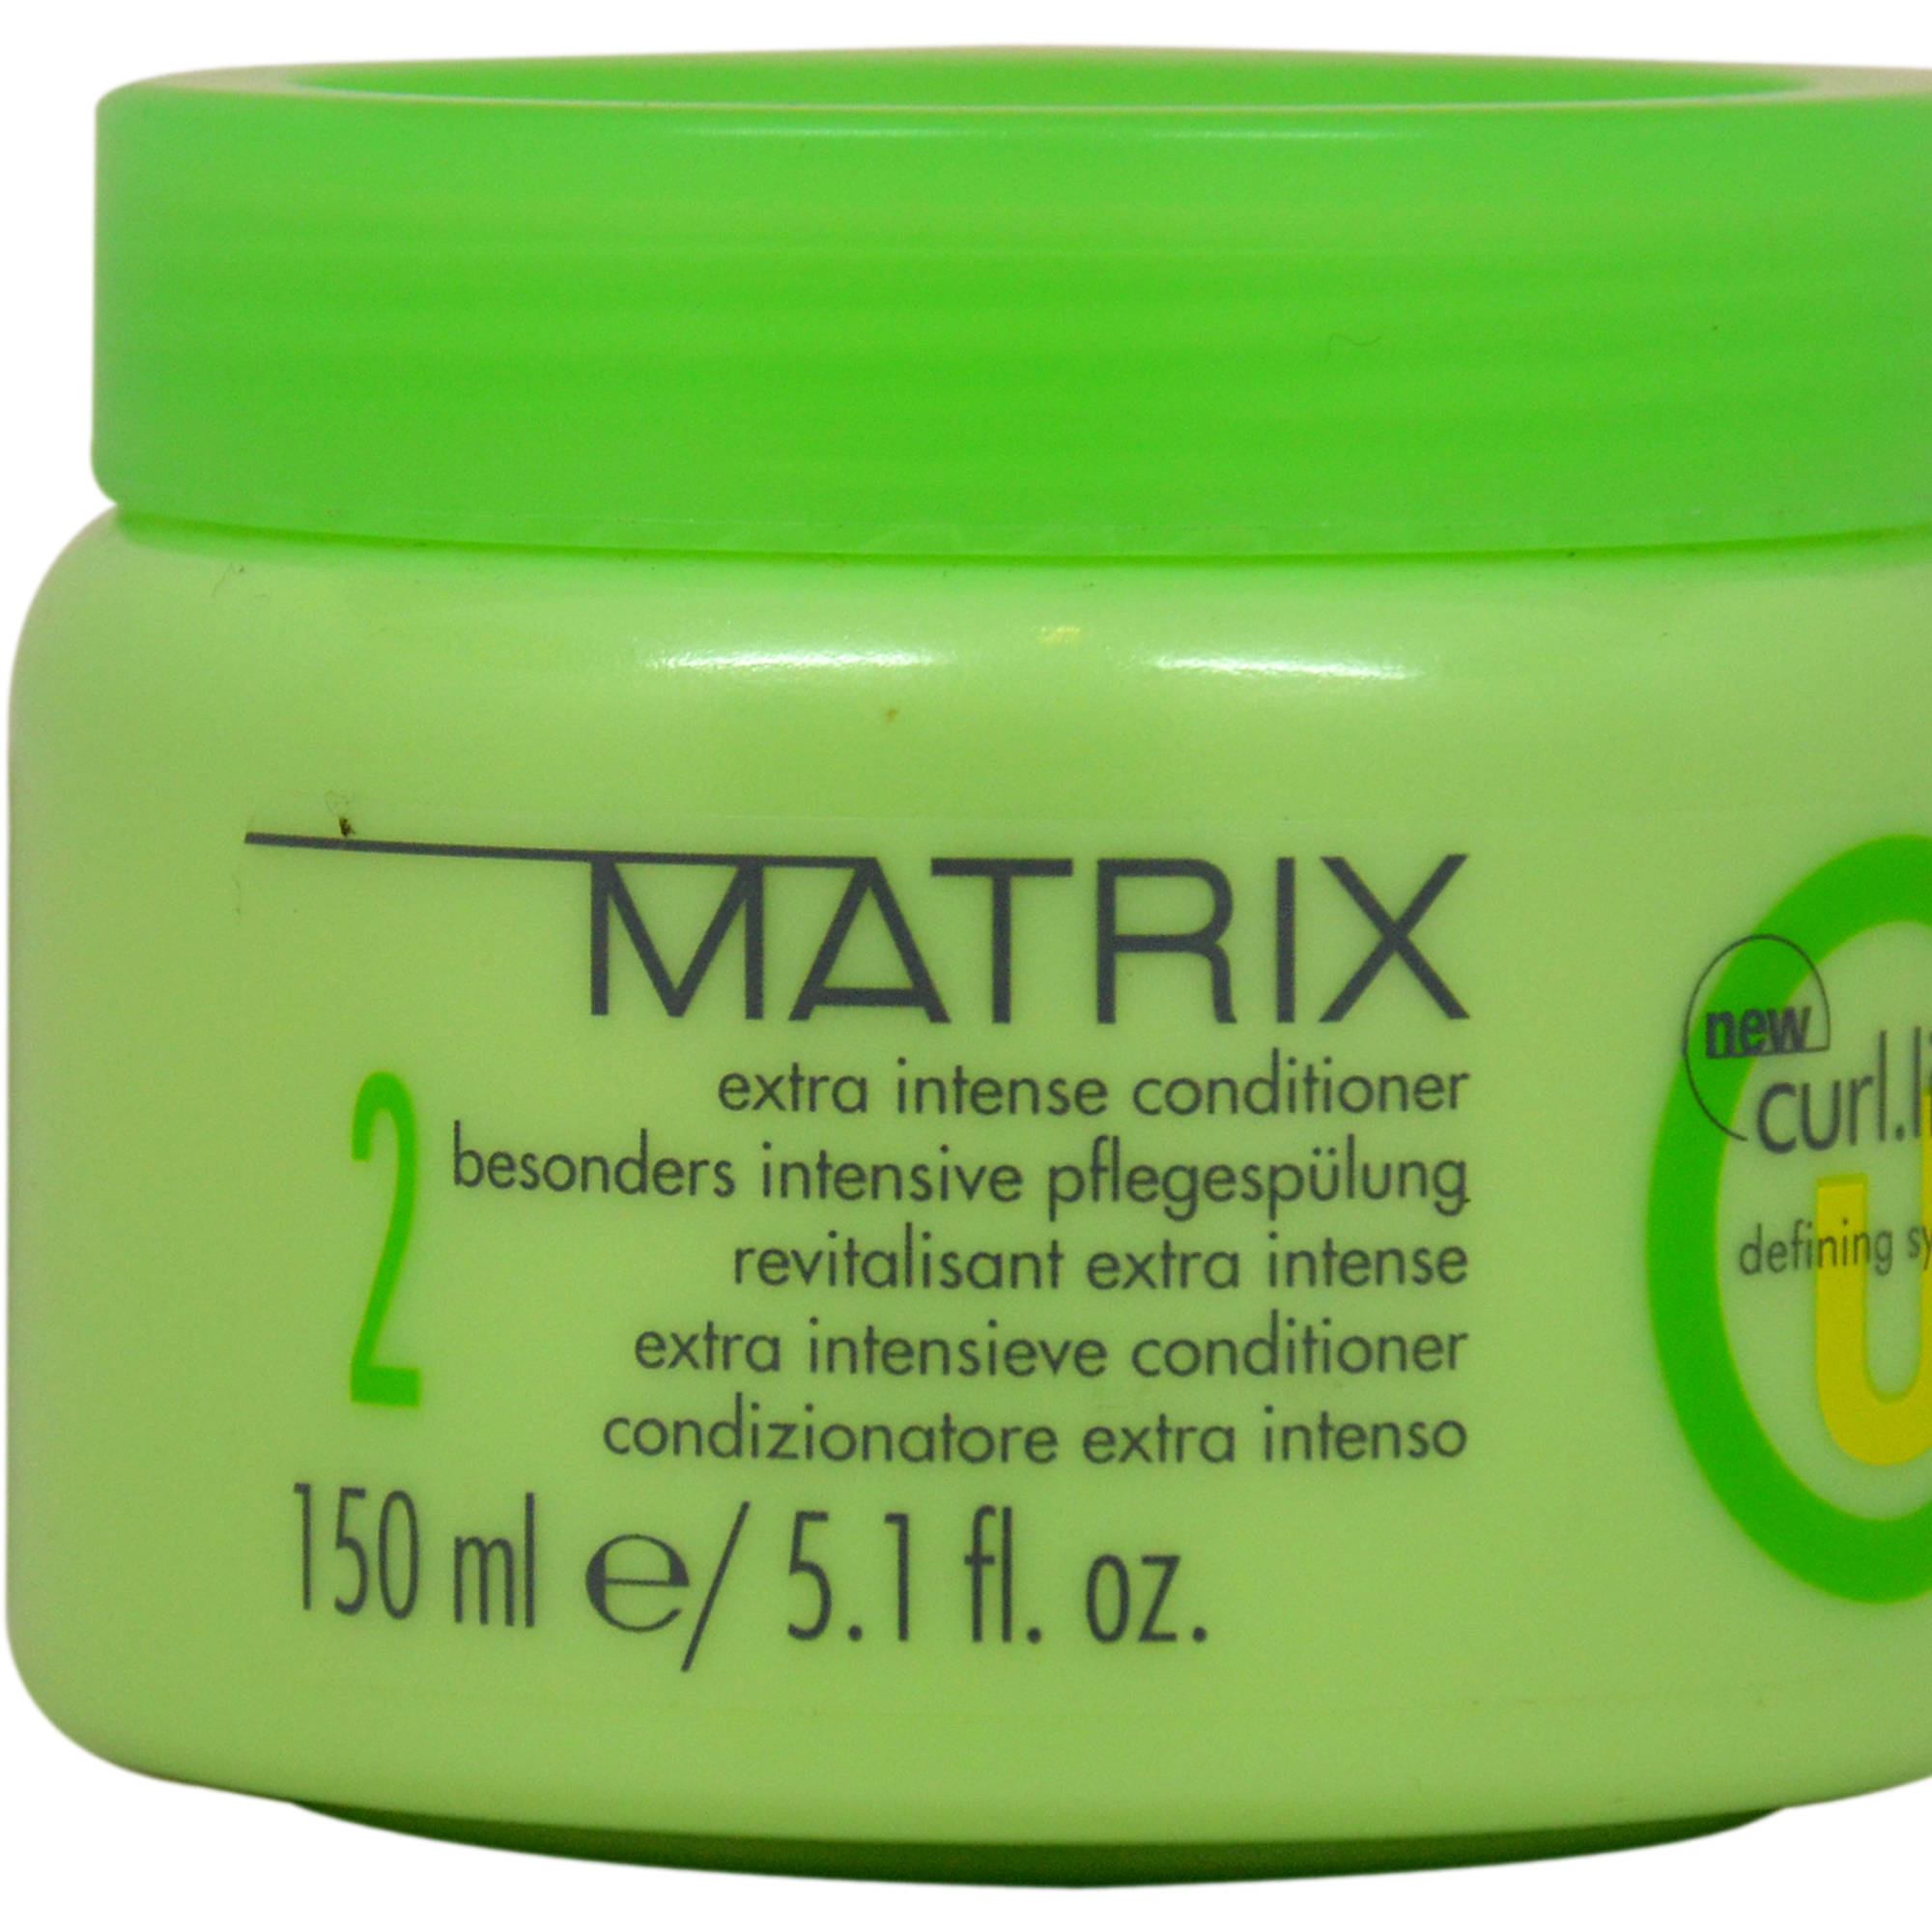 Matrix Curl Life Extra Intense for Unisex Conditioner, 5.1 fl oz